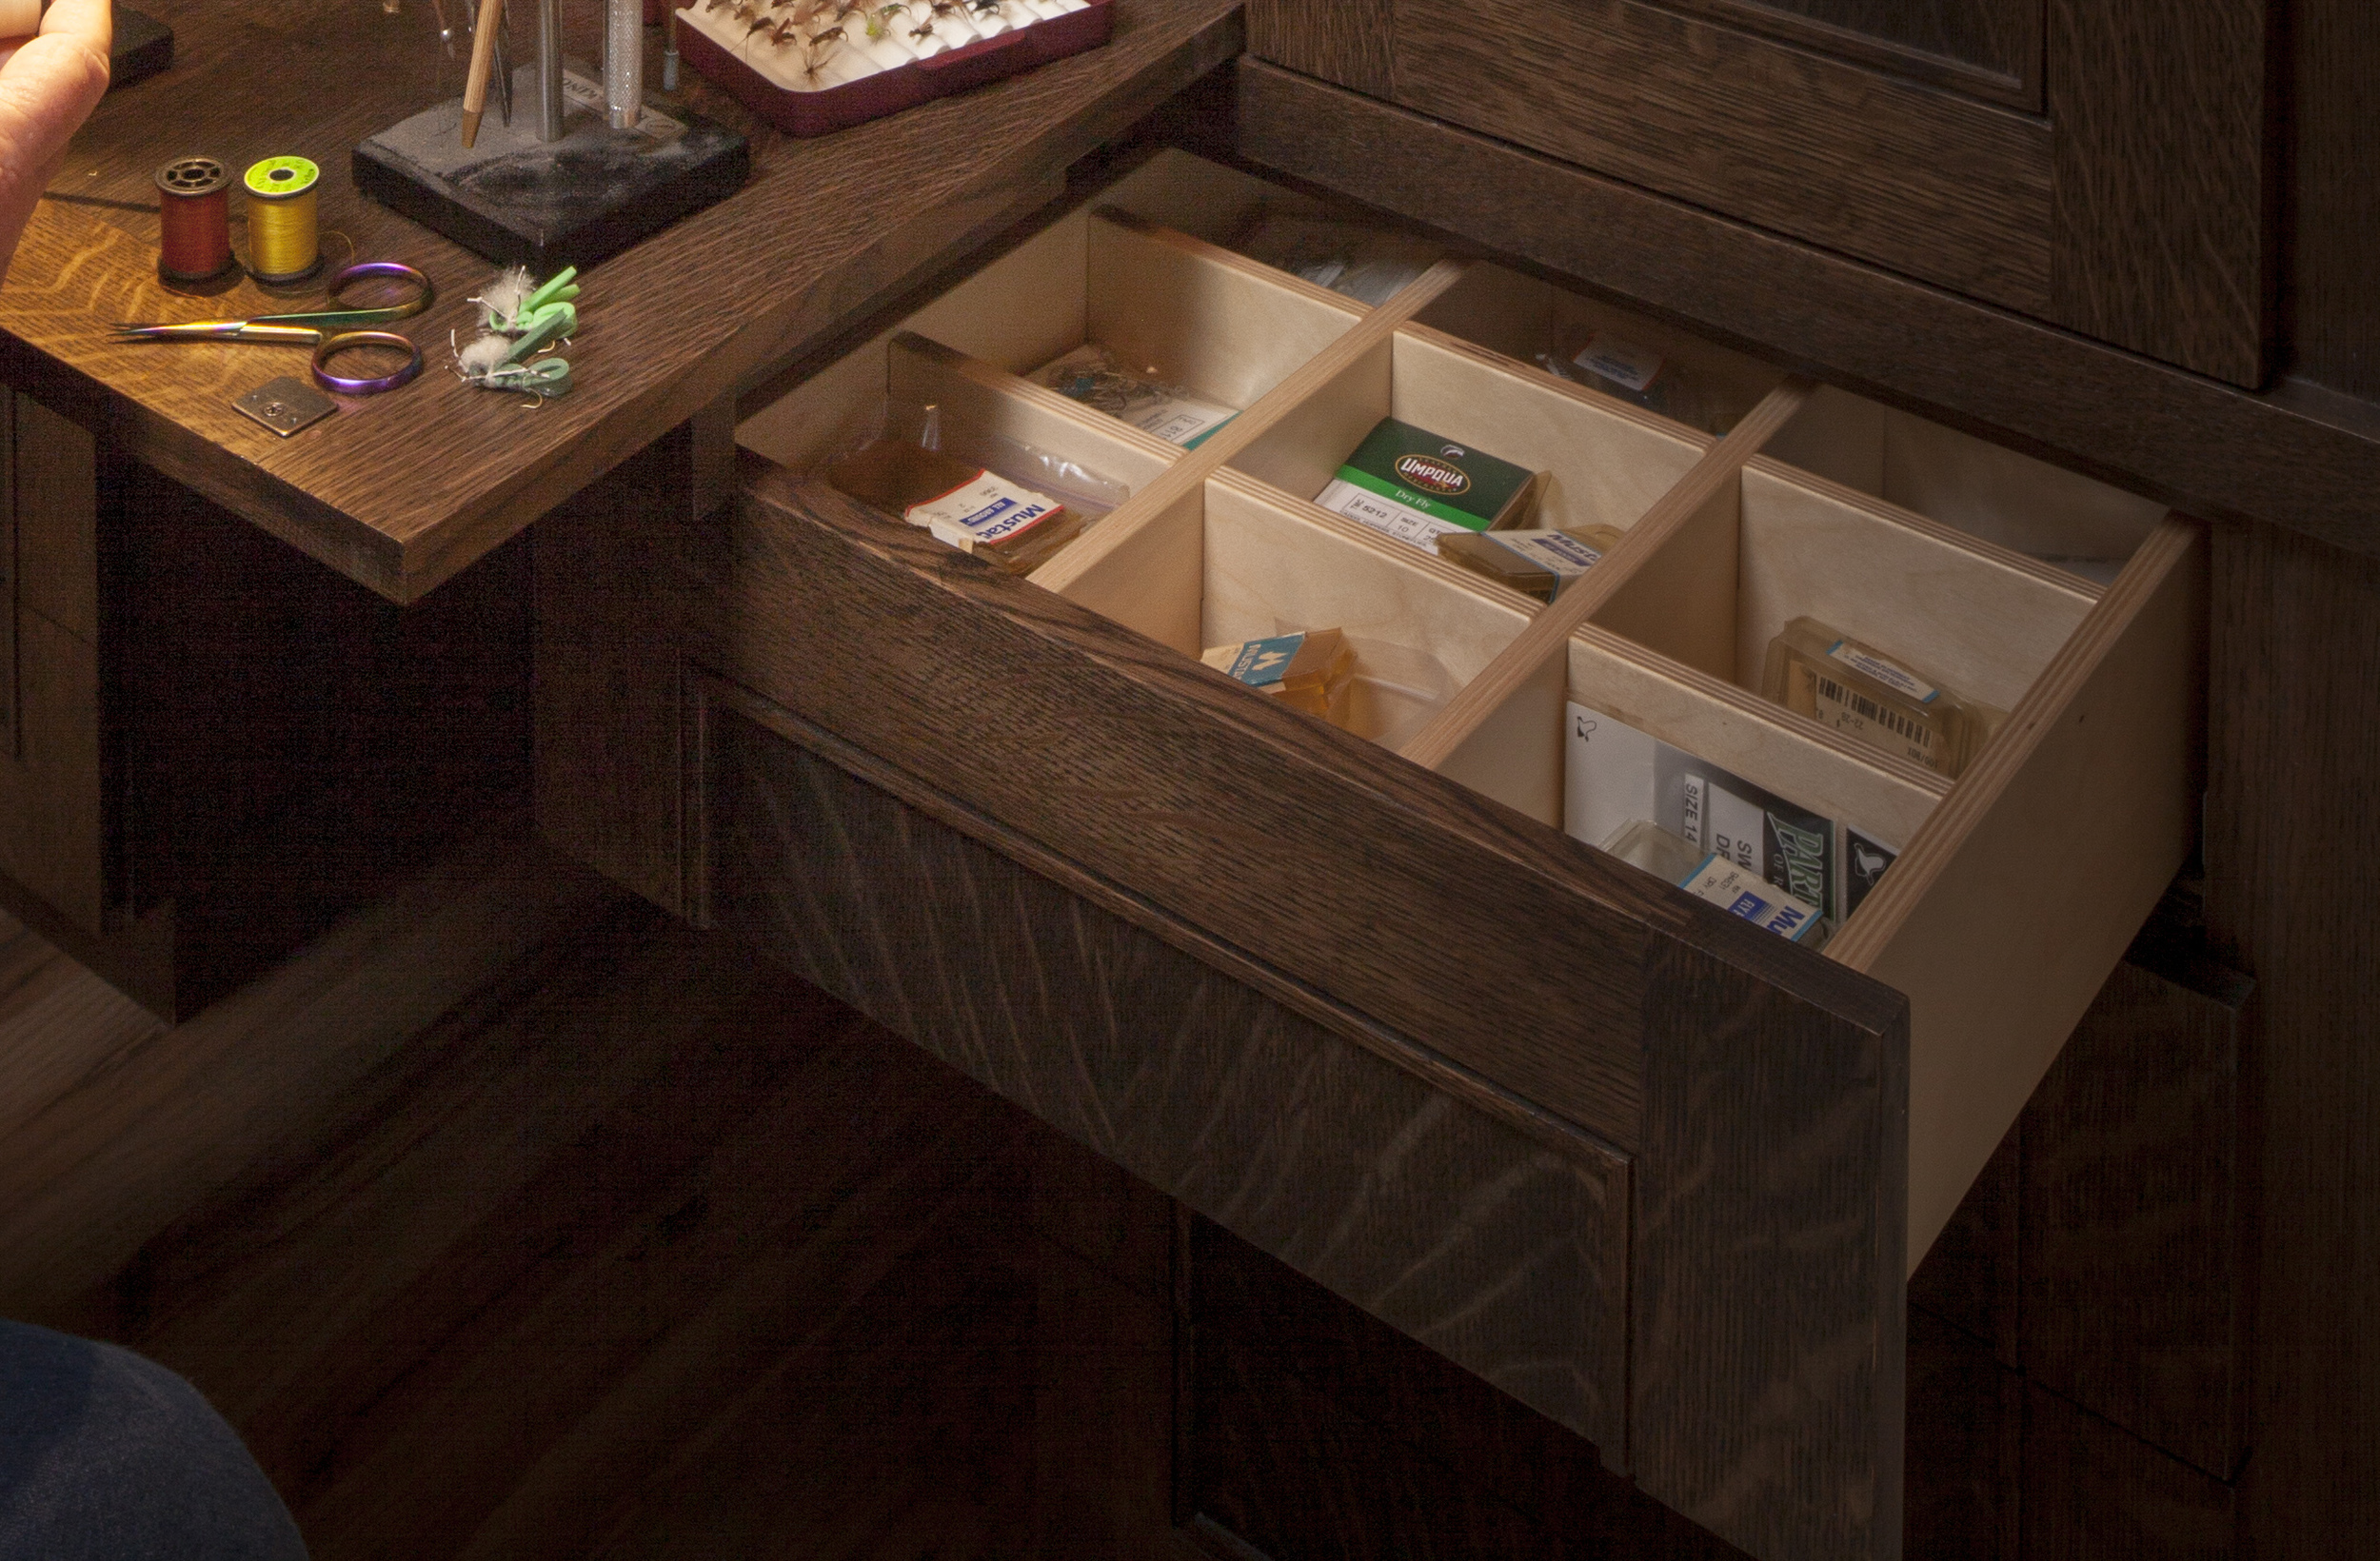 Compartments hold the multiple and necessary components for tying a proper fly. Built-in soft close drawers, which are included throughout the home, are part of this construction as well.  (Materials: Quarter-sawn white oak with stain and lacquer finish. Interior compartments are soft maple with clear lacquered finish - Click image for larger view.)